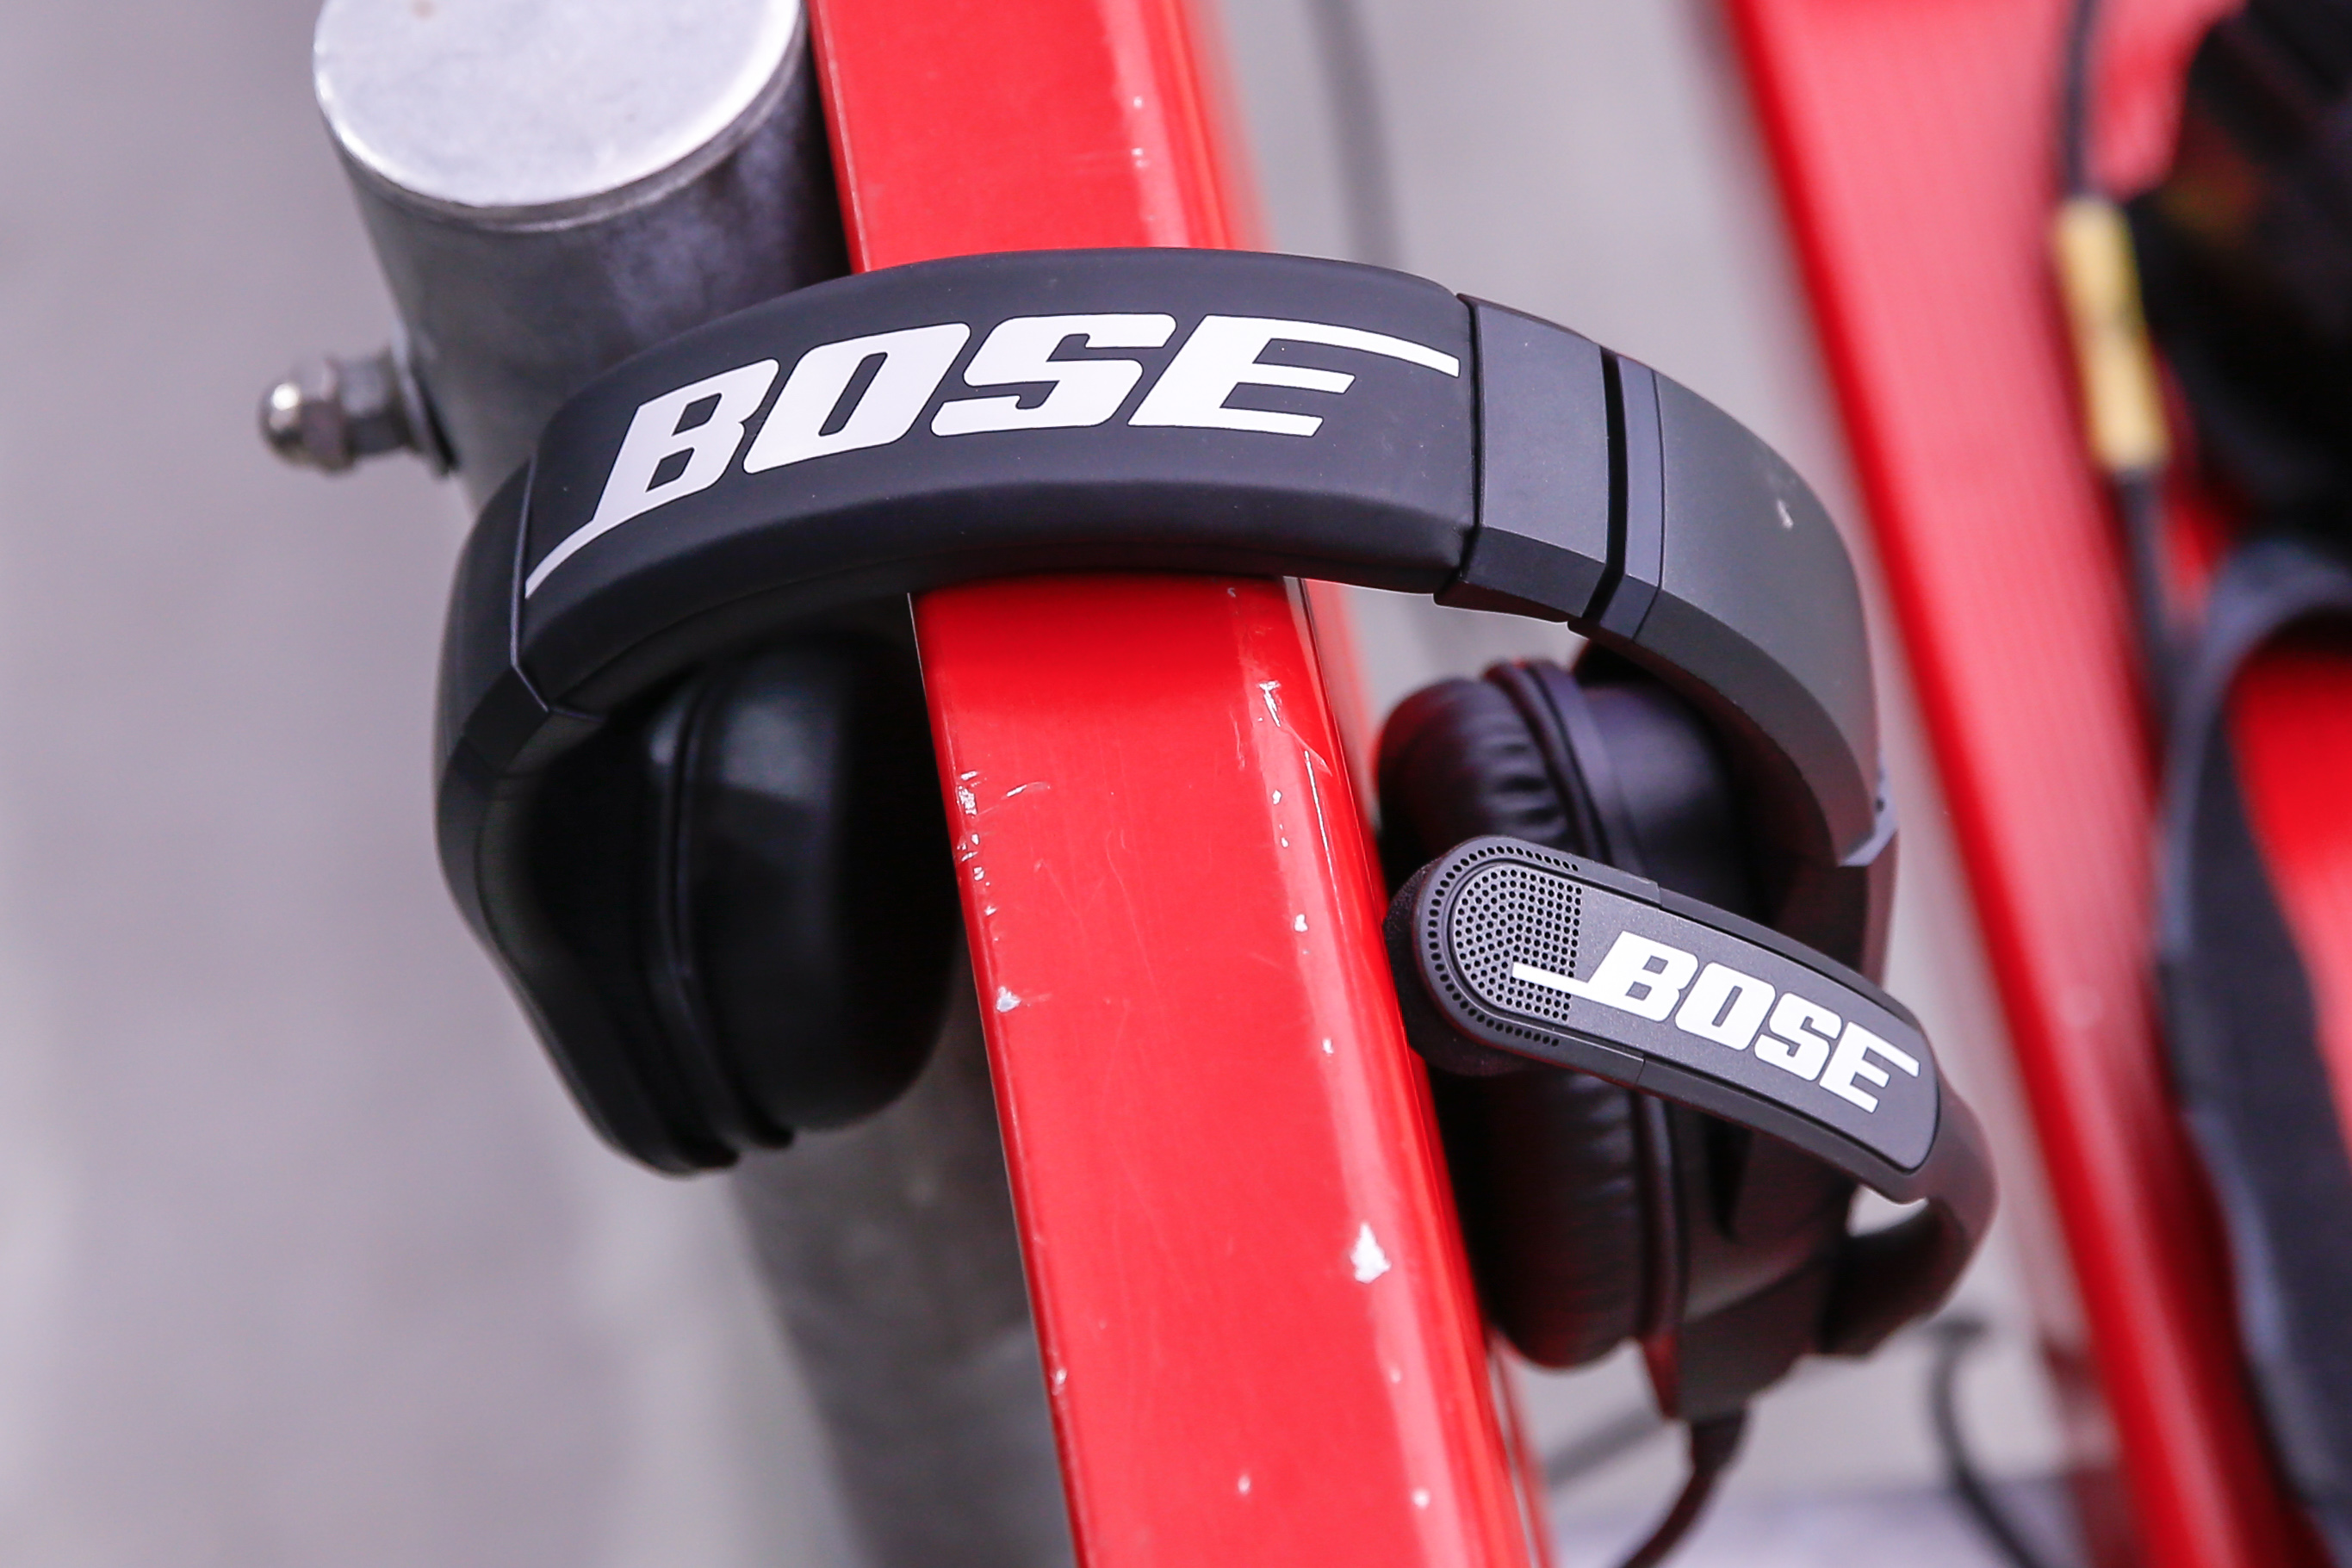 Bose confirms ransomware attack that exposed employee data | Engadget